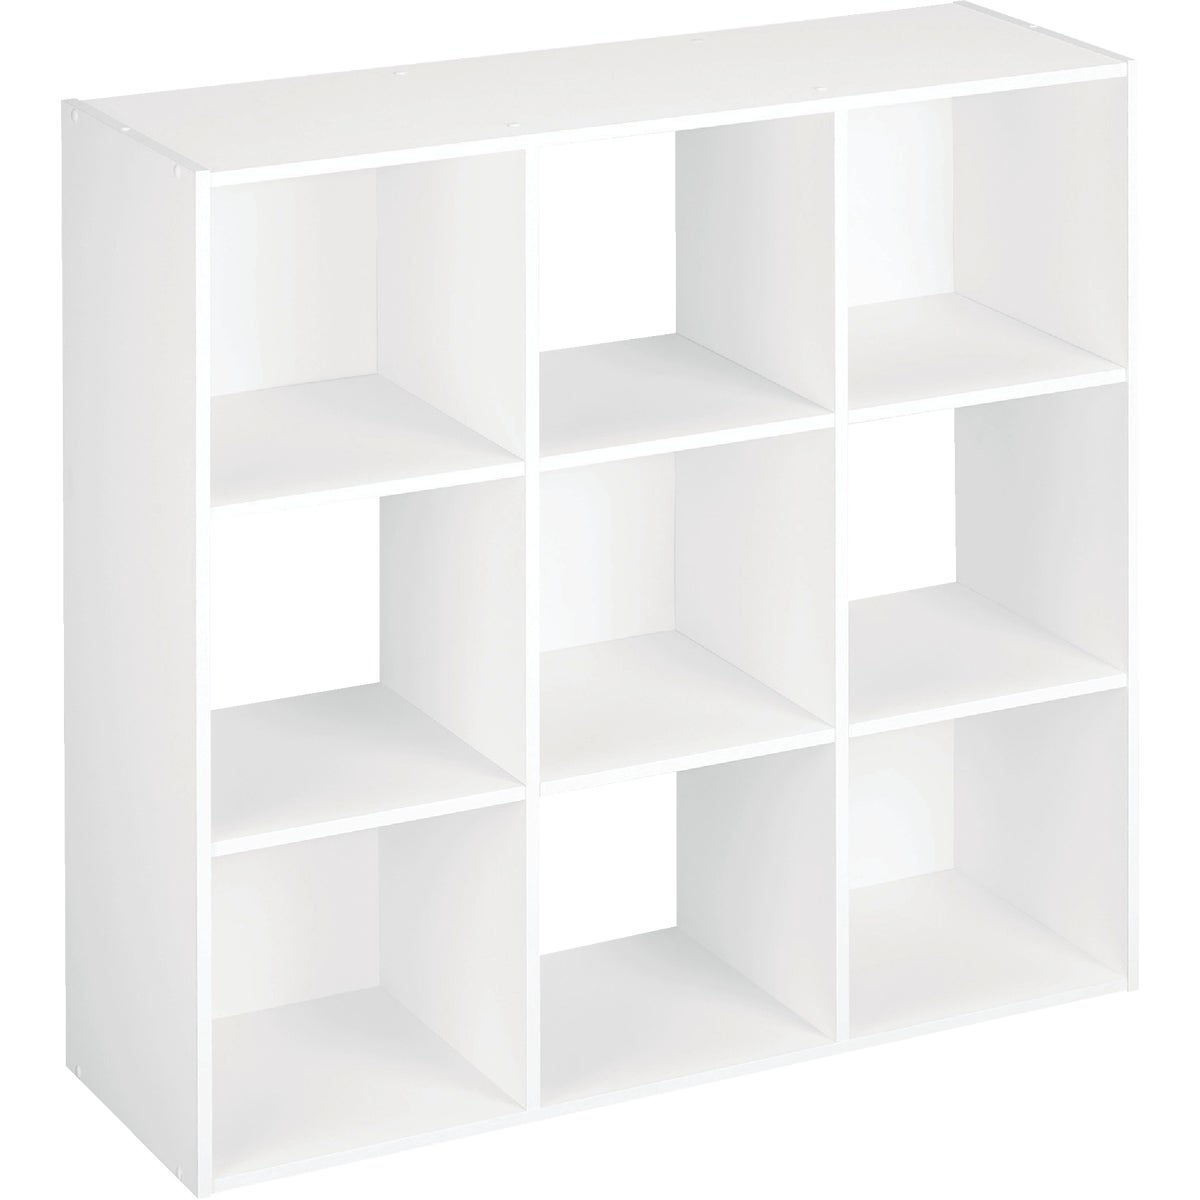 WHT 9 CUBE ORGANIZER - 42100 by Closetmaid